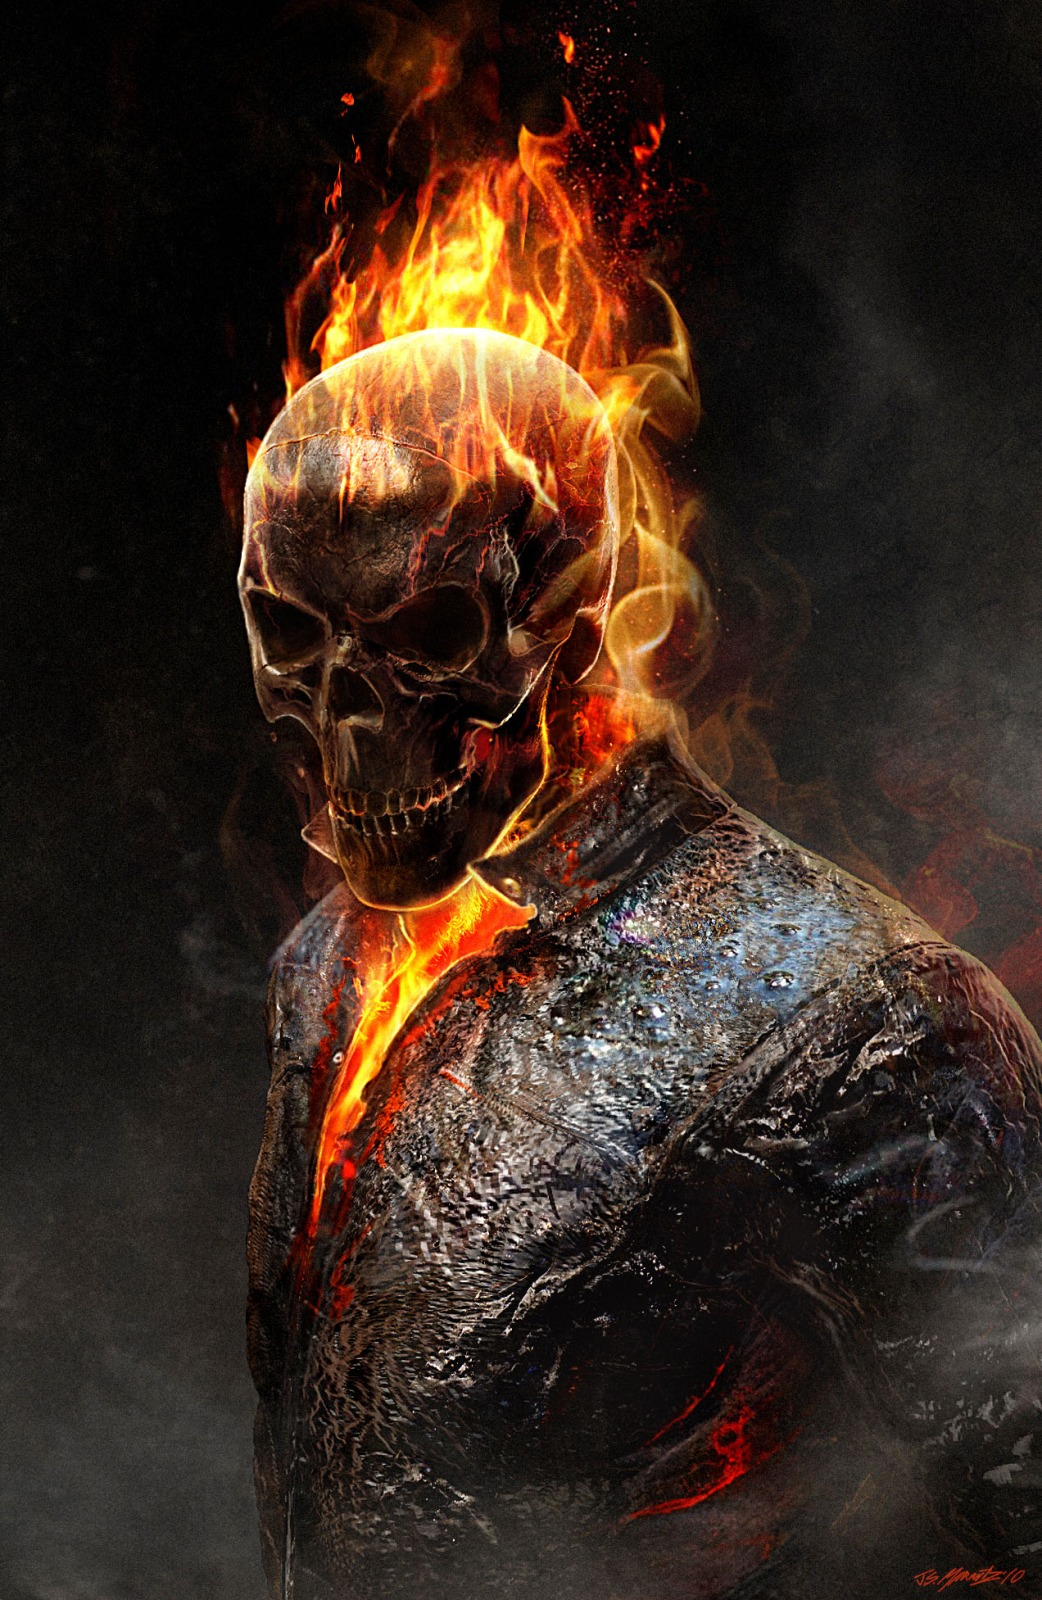 Ghost Rider images ghost rider wallpaper photos 29889431 1042x1600